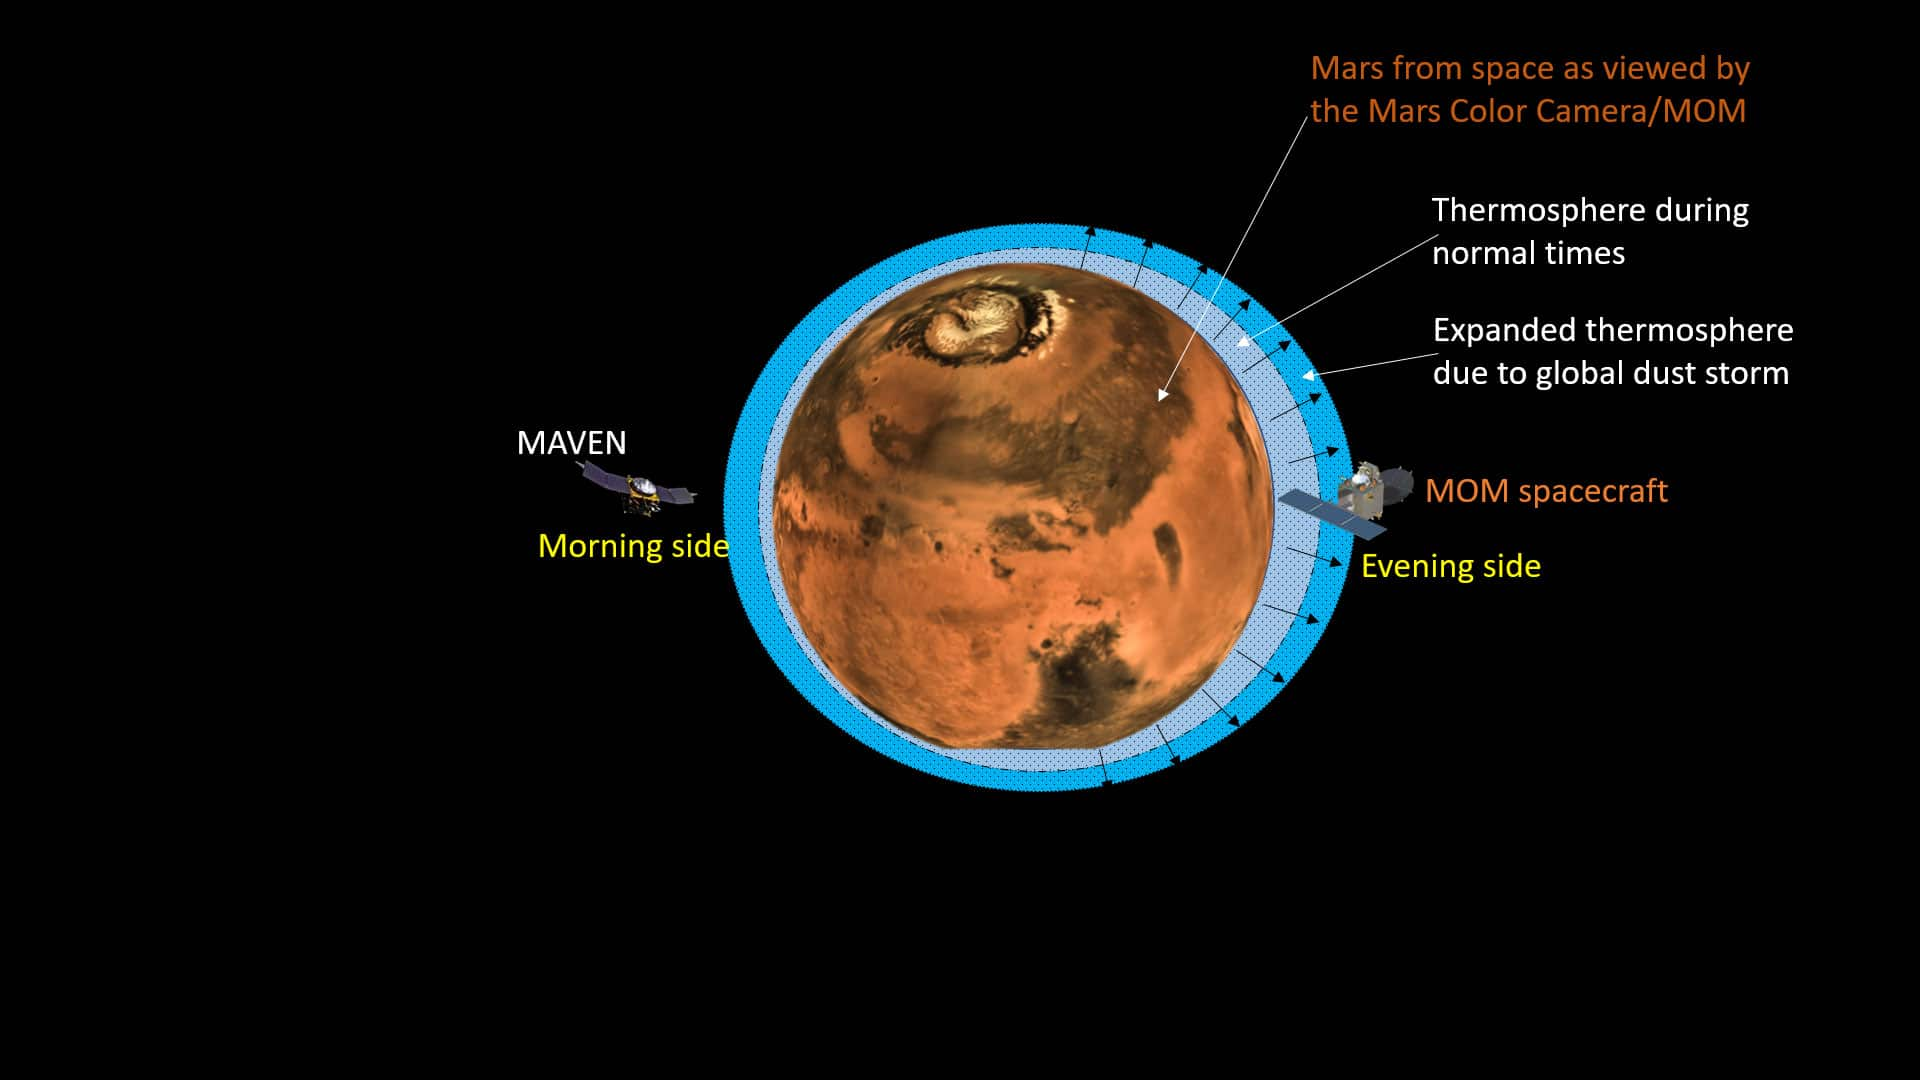 Mars losing its atmosphere at a faster rate